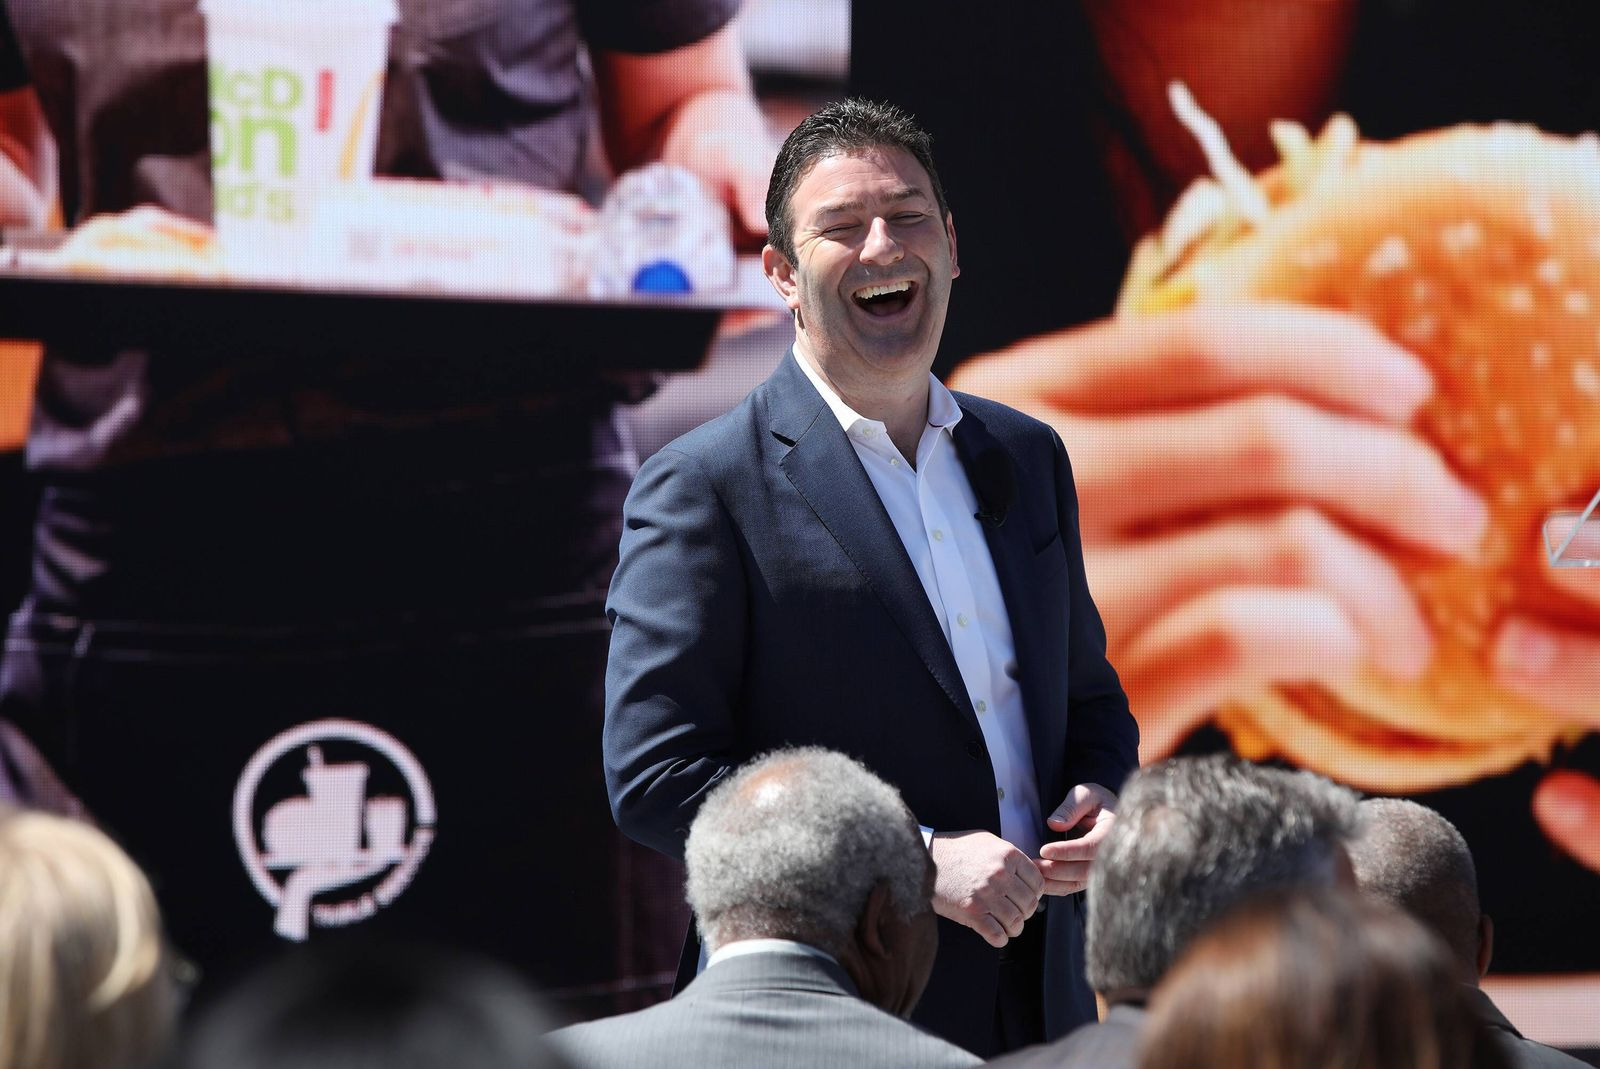 June 4, 2018 - Chicago, IL, USA - Steve Easterbrook , President and CEO of McDonald s Corporation, greets people in the